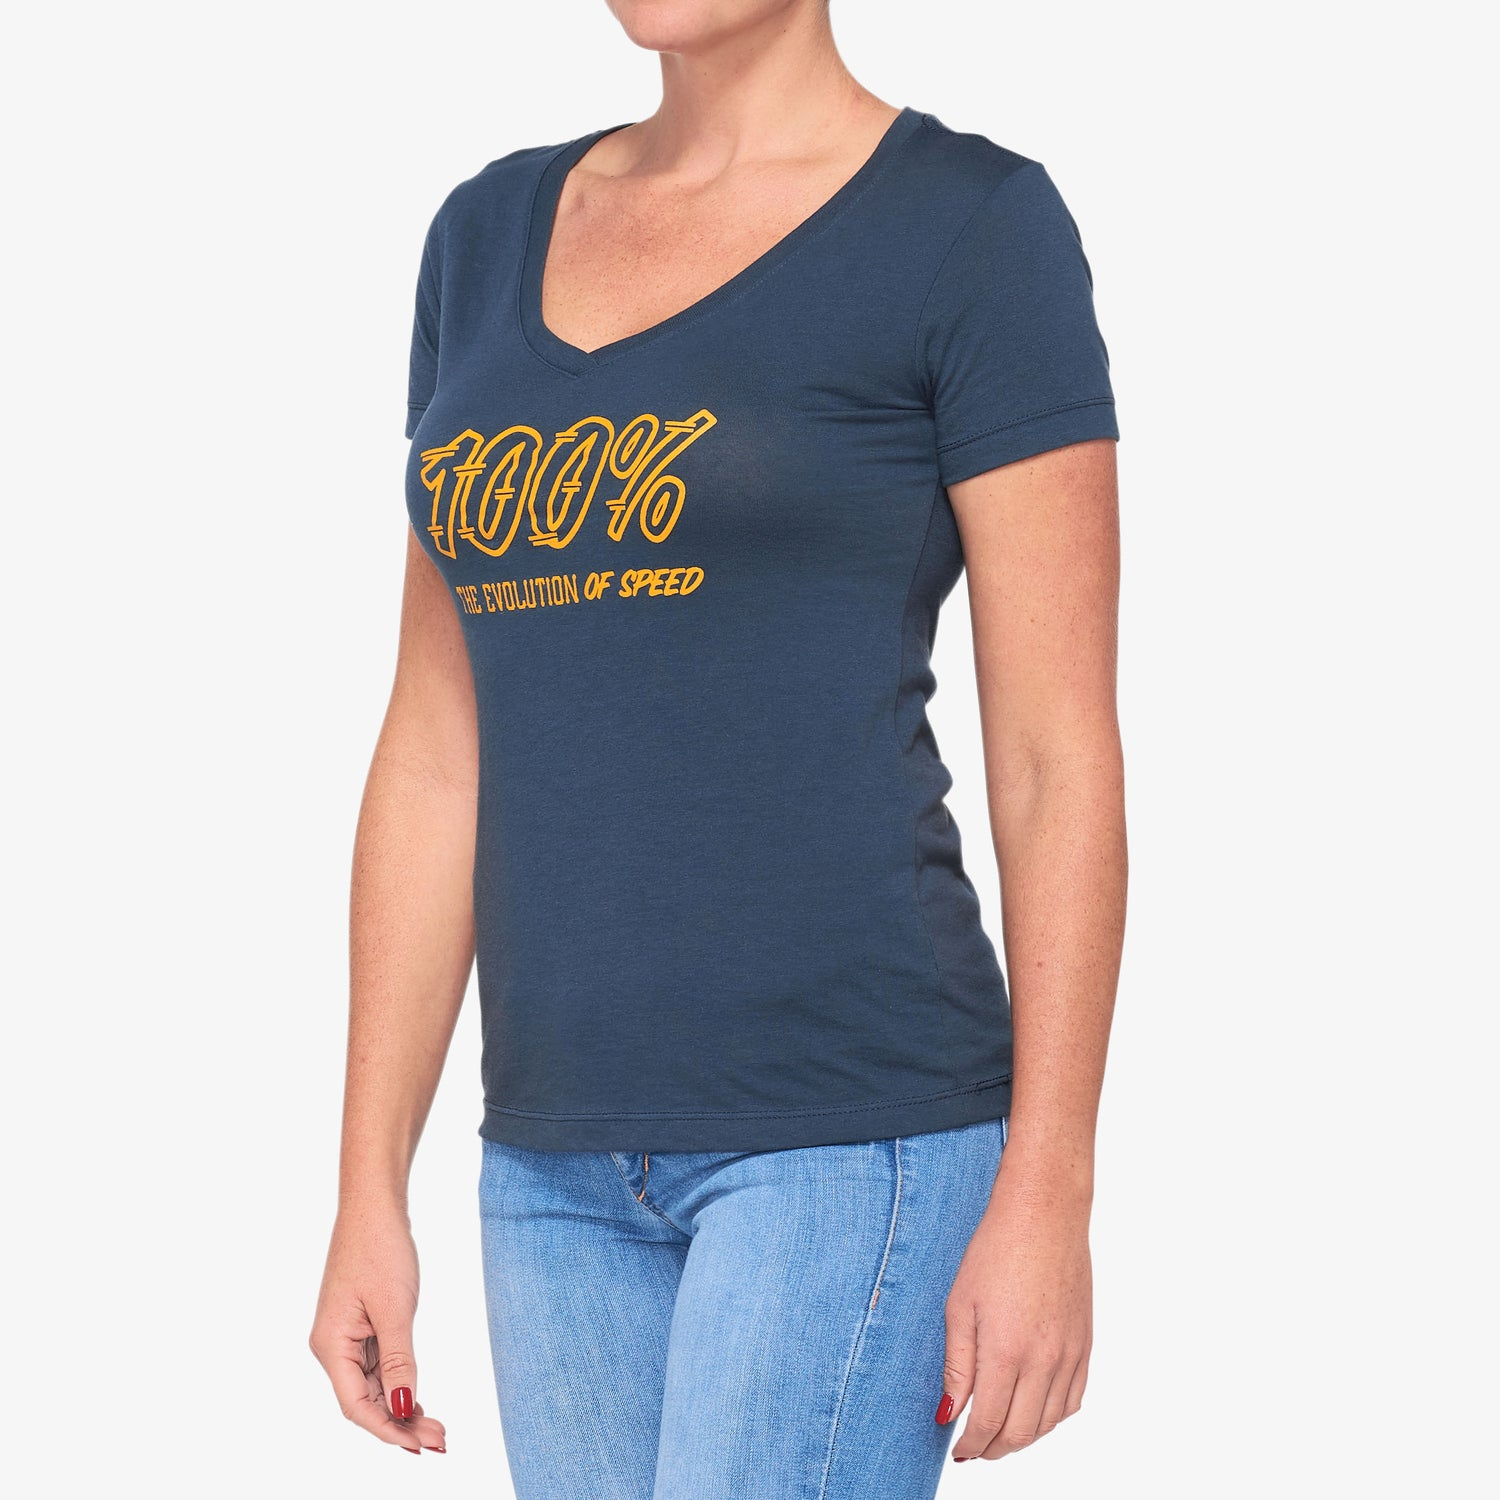 SPEEDCO Women's V-Neck Navy